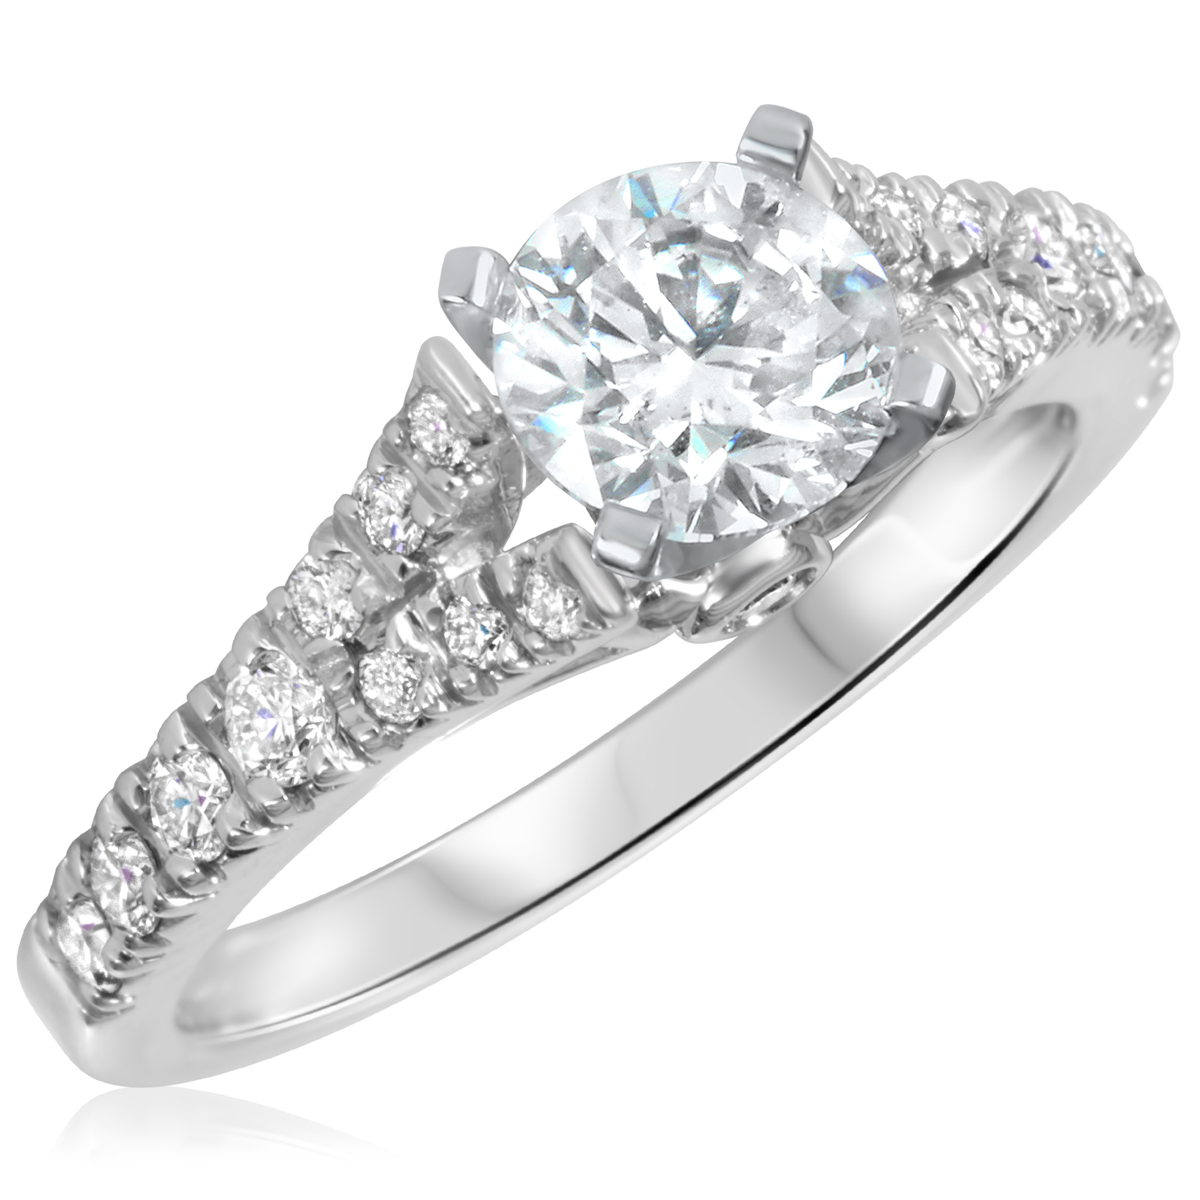 1 3/8 CT. T.W. Diamond Ladies Engagement Ring 10K White Gold- Size 8